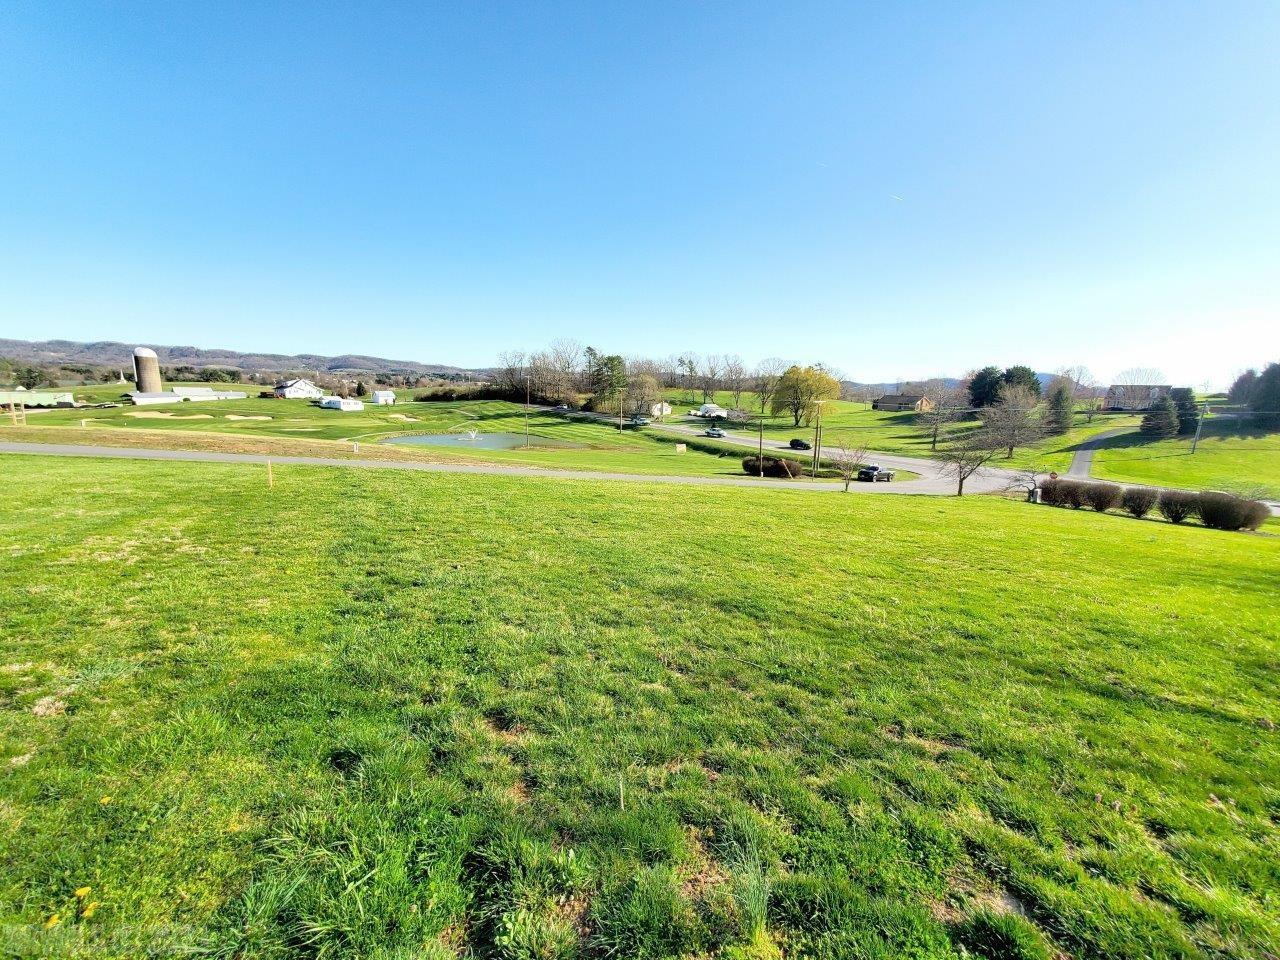 Owner Financing Available. Great building lot overlooking the 11th green at Auburn Hills Golf Club and farm and mountains in the distance. Water and sewer available. Conveniently located close to Blacksburg, VT, Radford, Christiansburg, Carilion Medical and I-81. No HOA. Build your dream home today. Call for more information.